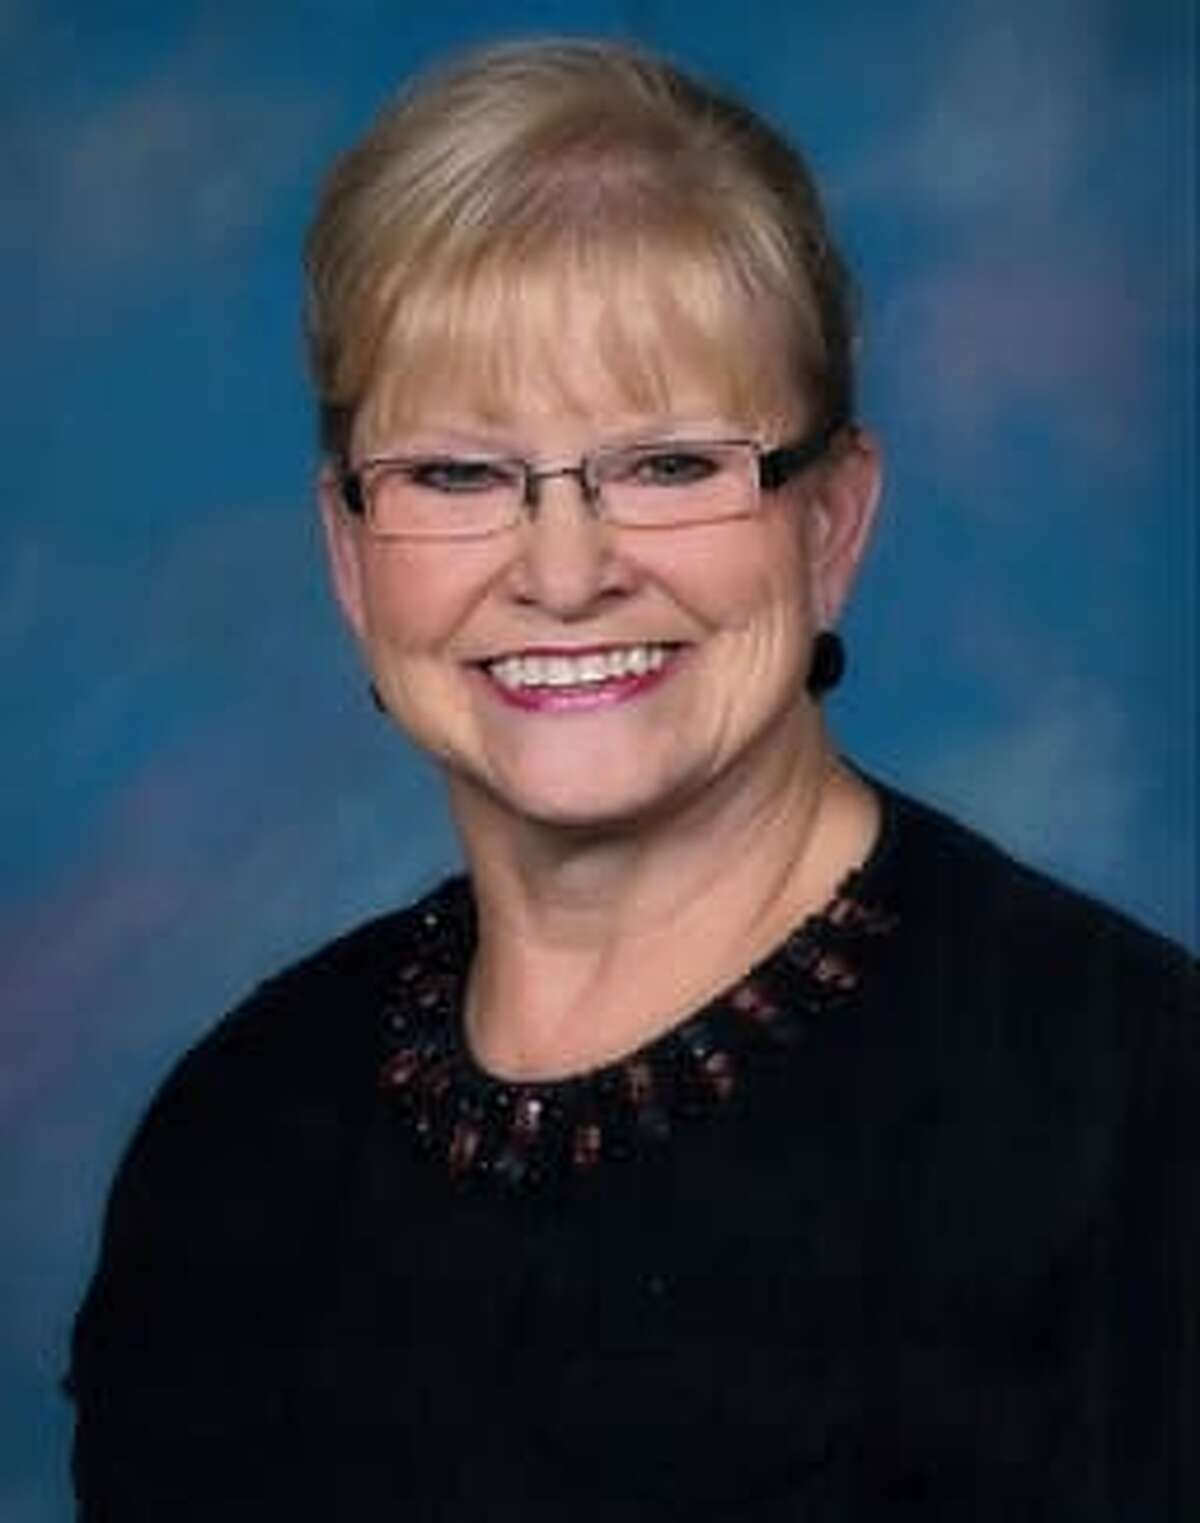 Charlcya Wheeler, in her 18th year as a La Porte ISD trustee, resigned at the school board's Sept. 7 regular meeting, citing health reasons.